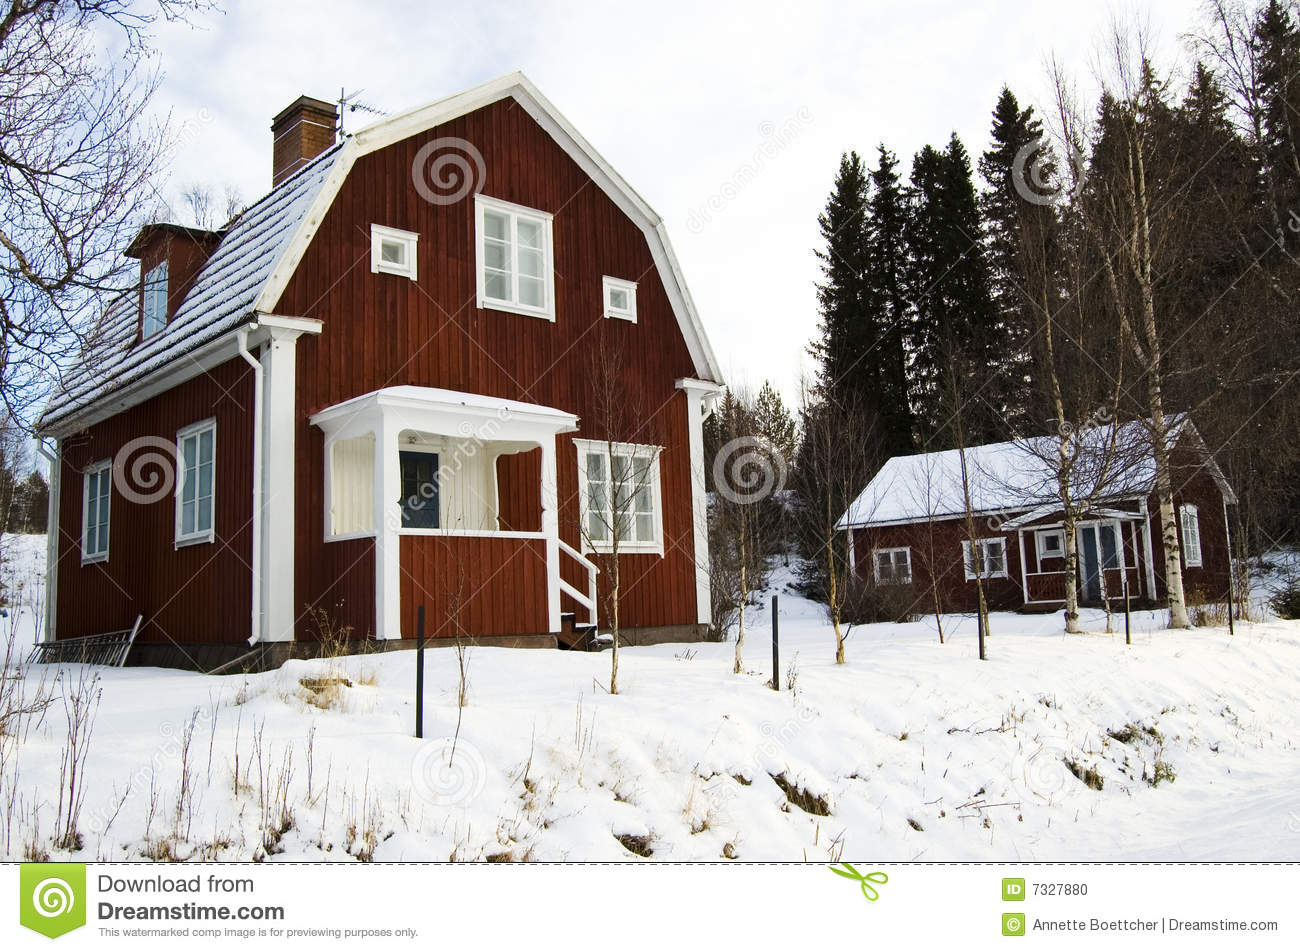 traditional swedish houses in winter snow stock image - image